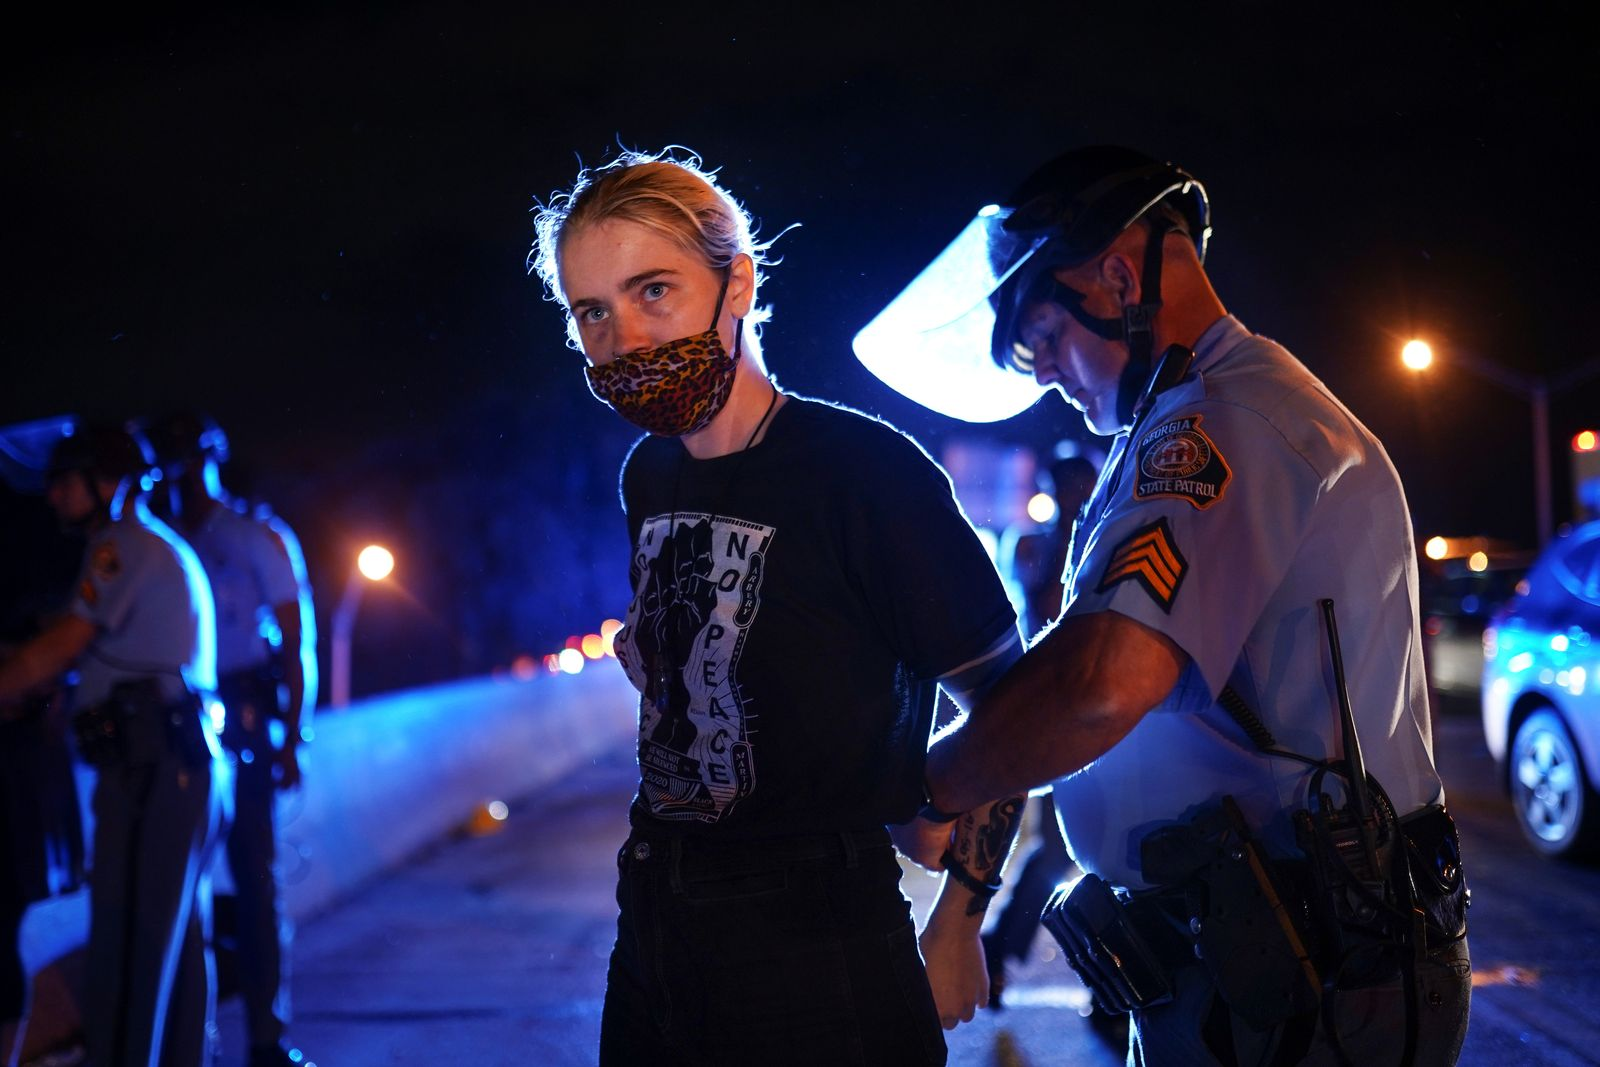 Police detain a protester for blocking traffic during a rally against racial inequality and the police shooting death of Rayshard Brooks, in Atlanta